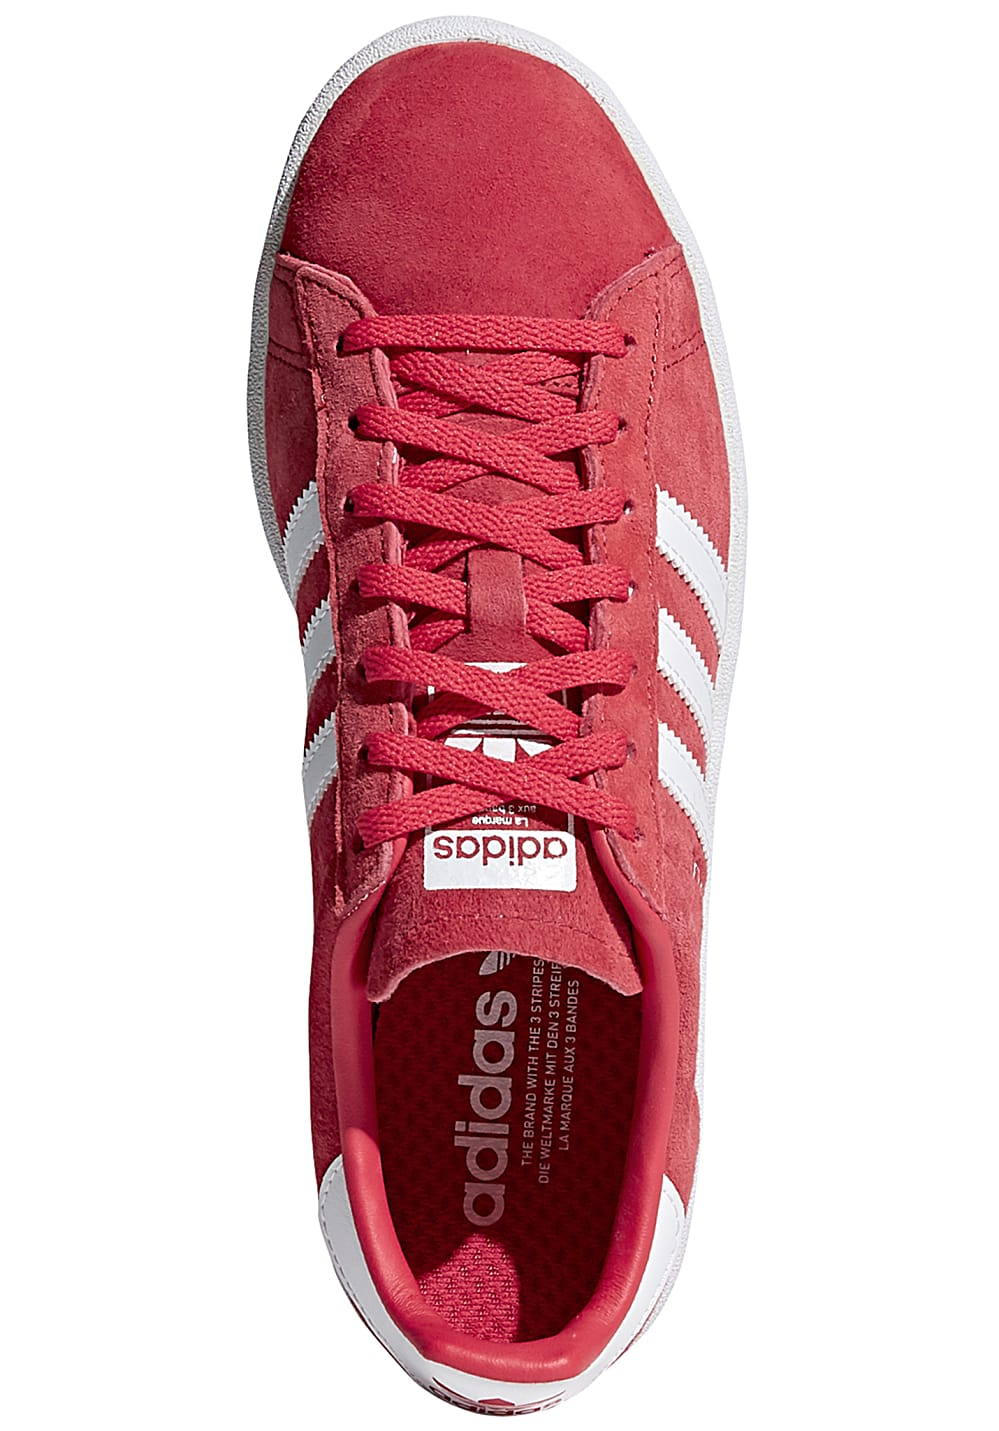 for whole family outlet great fit adidas campus weiß rote